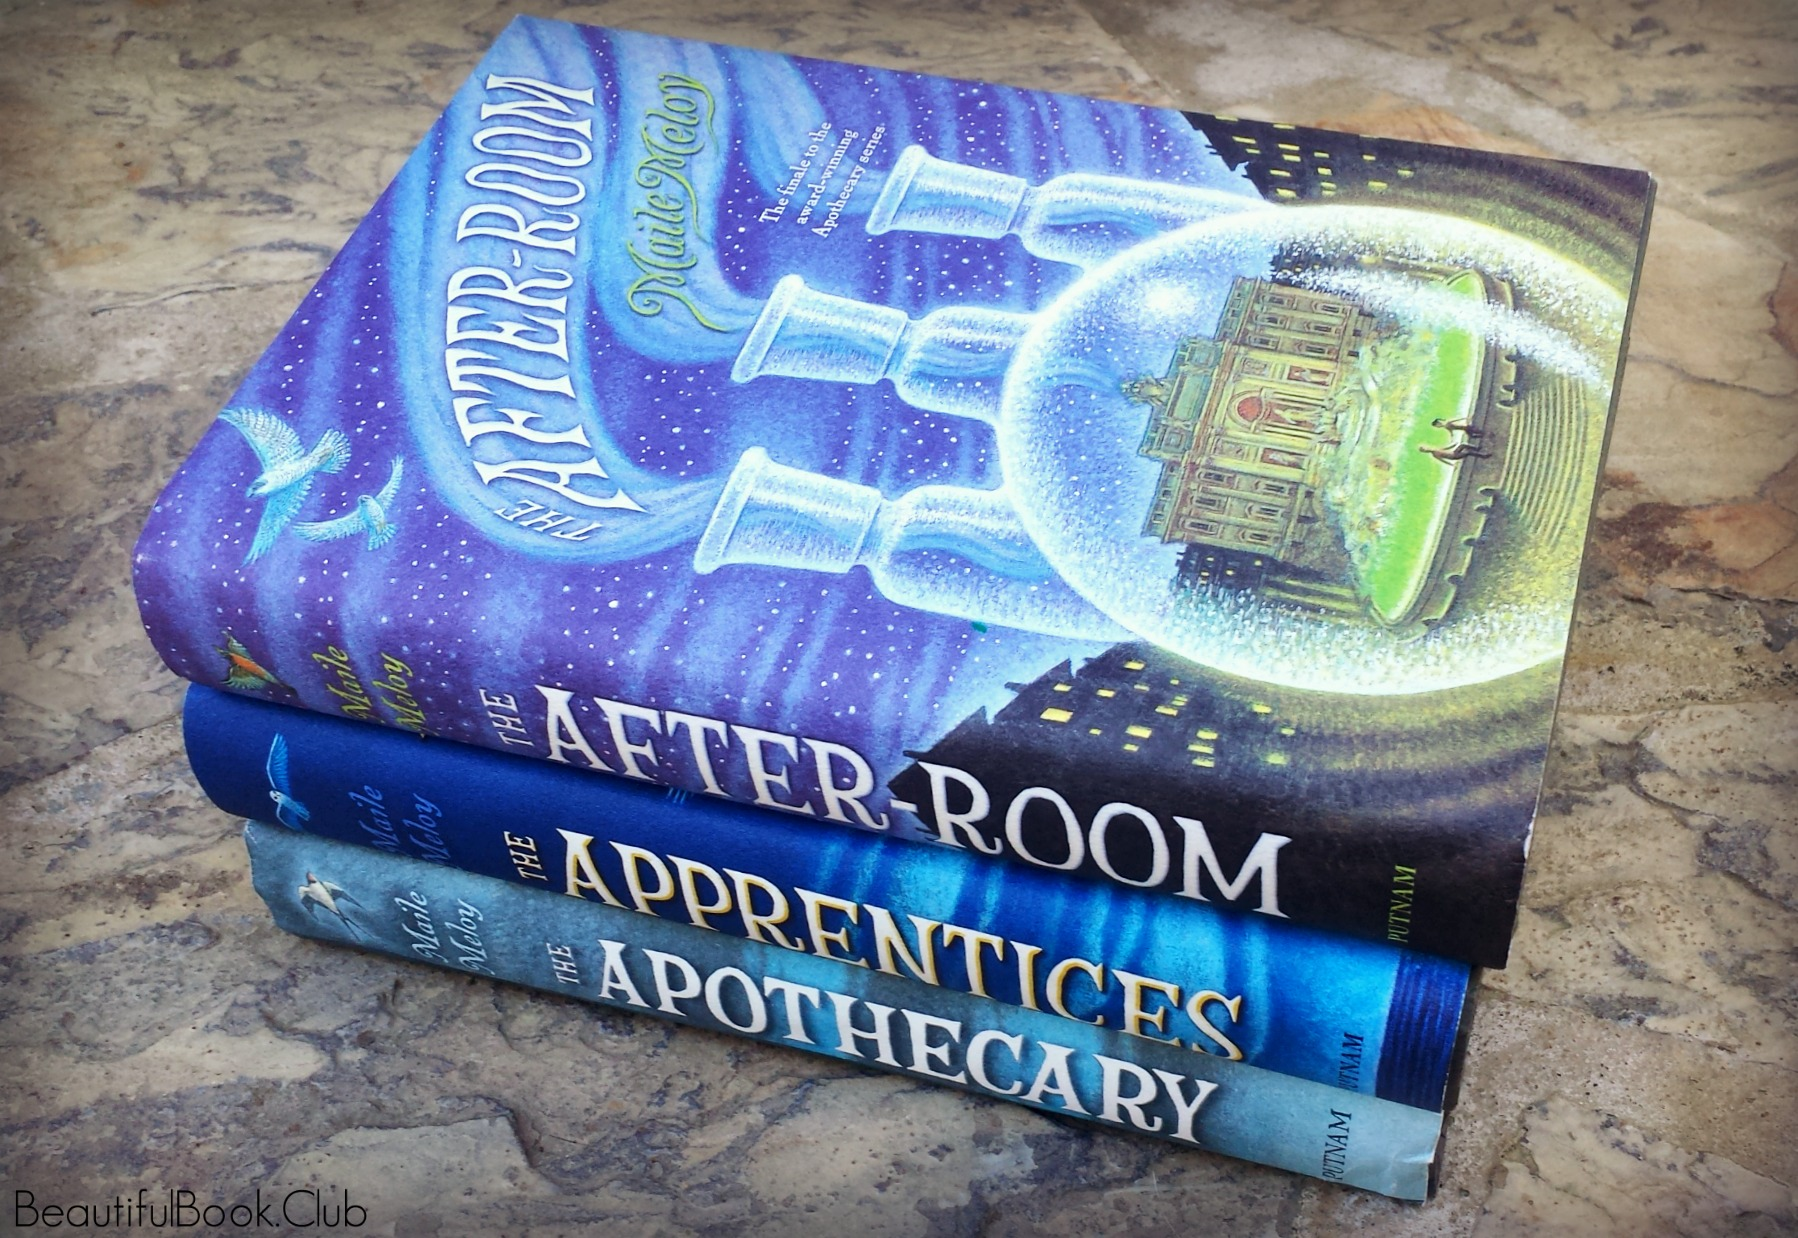 The After-Room by Maile Meloy with The Apothecary series